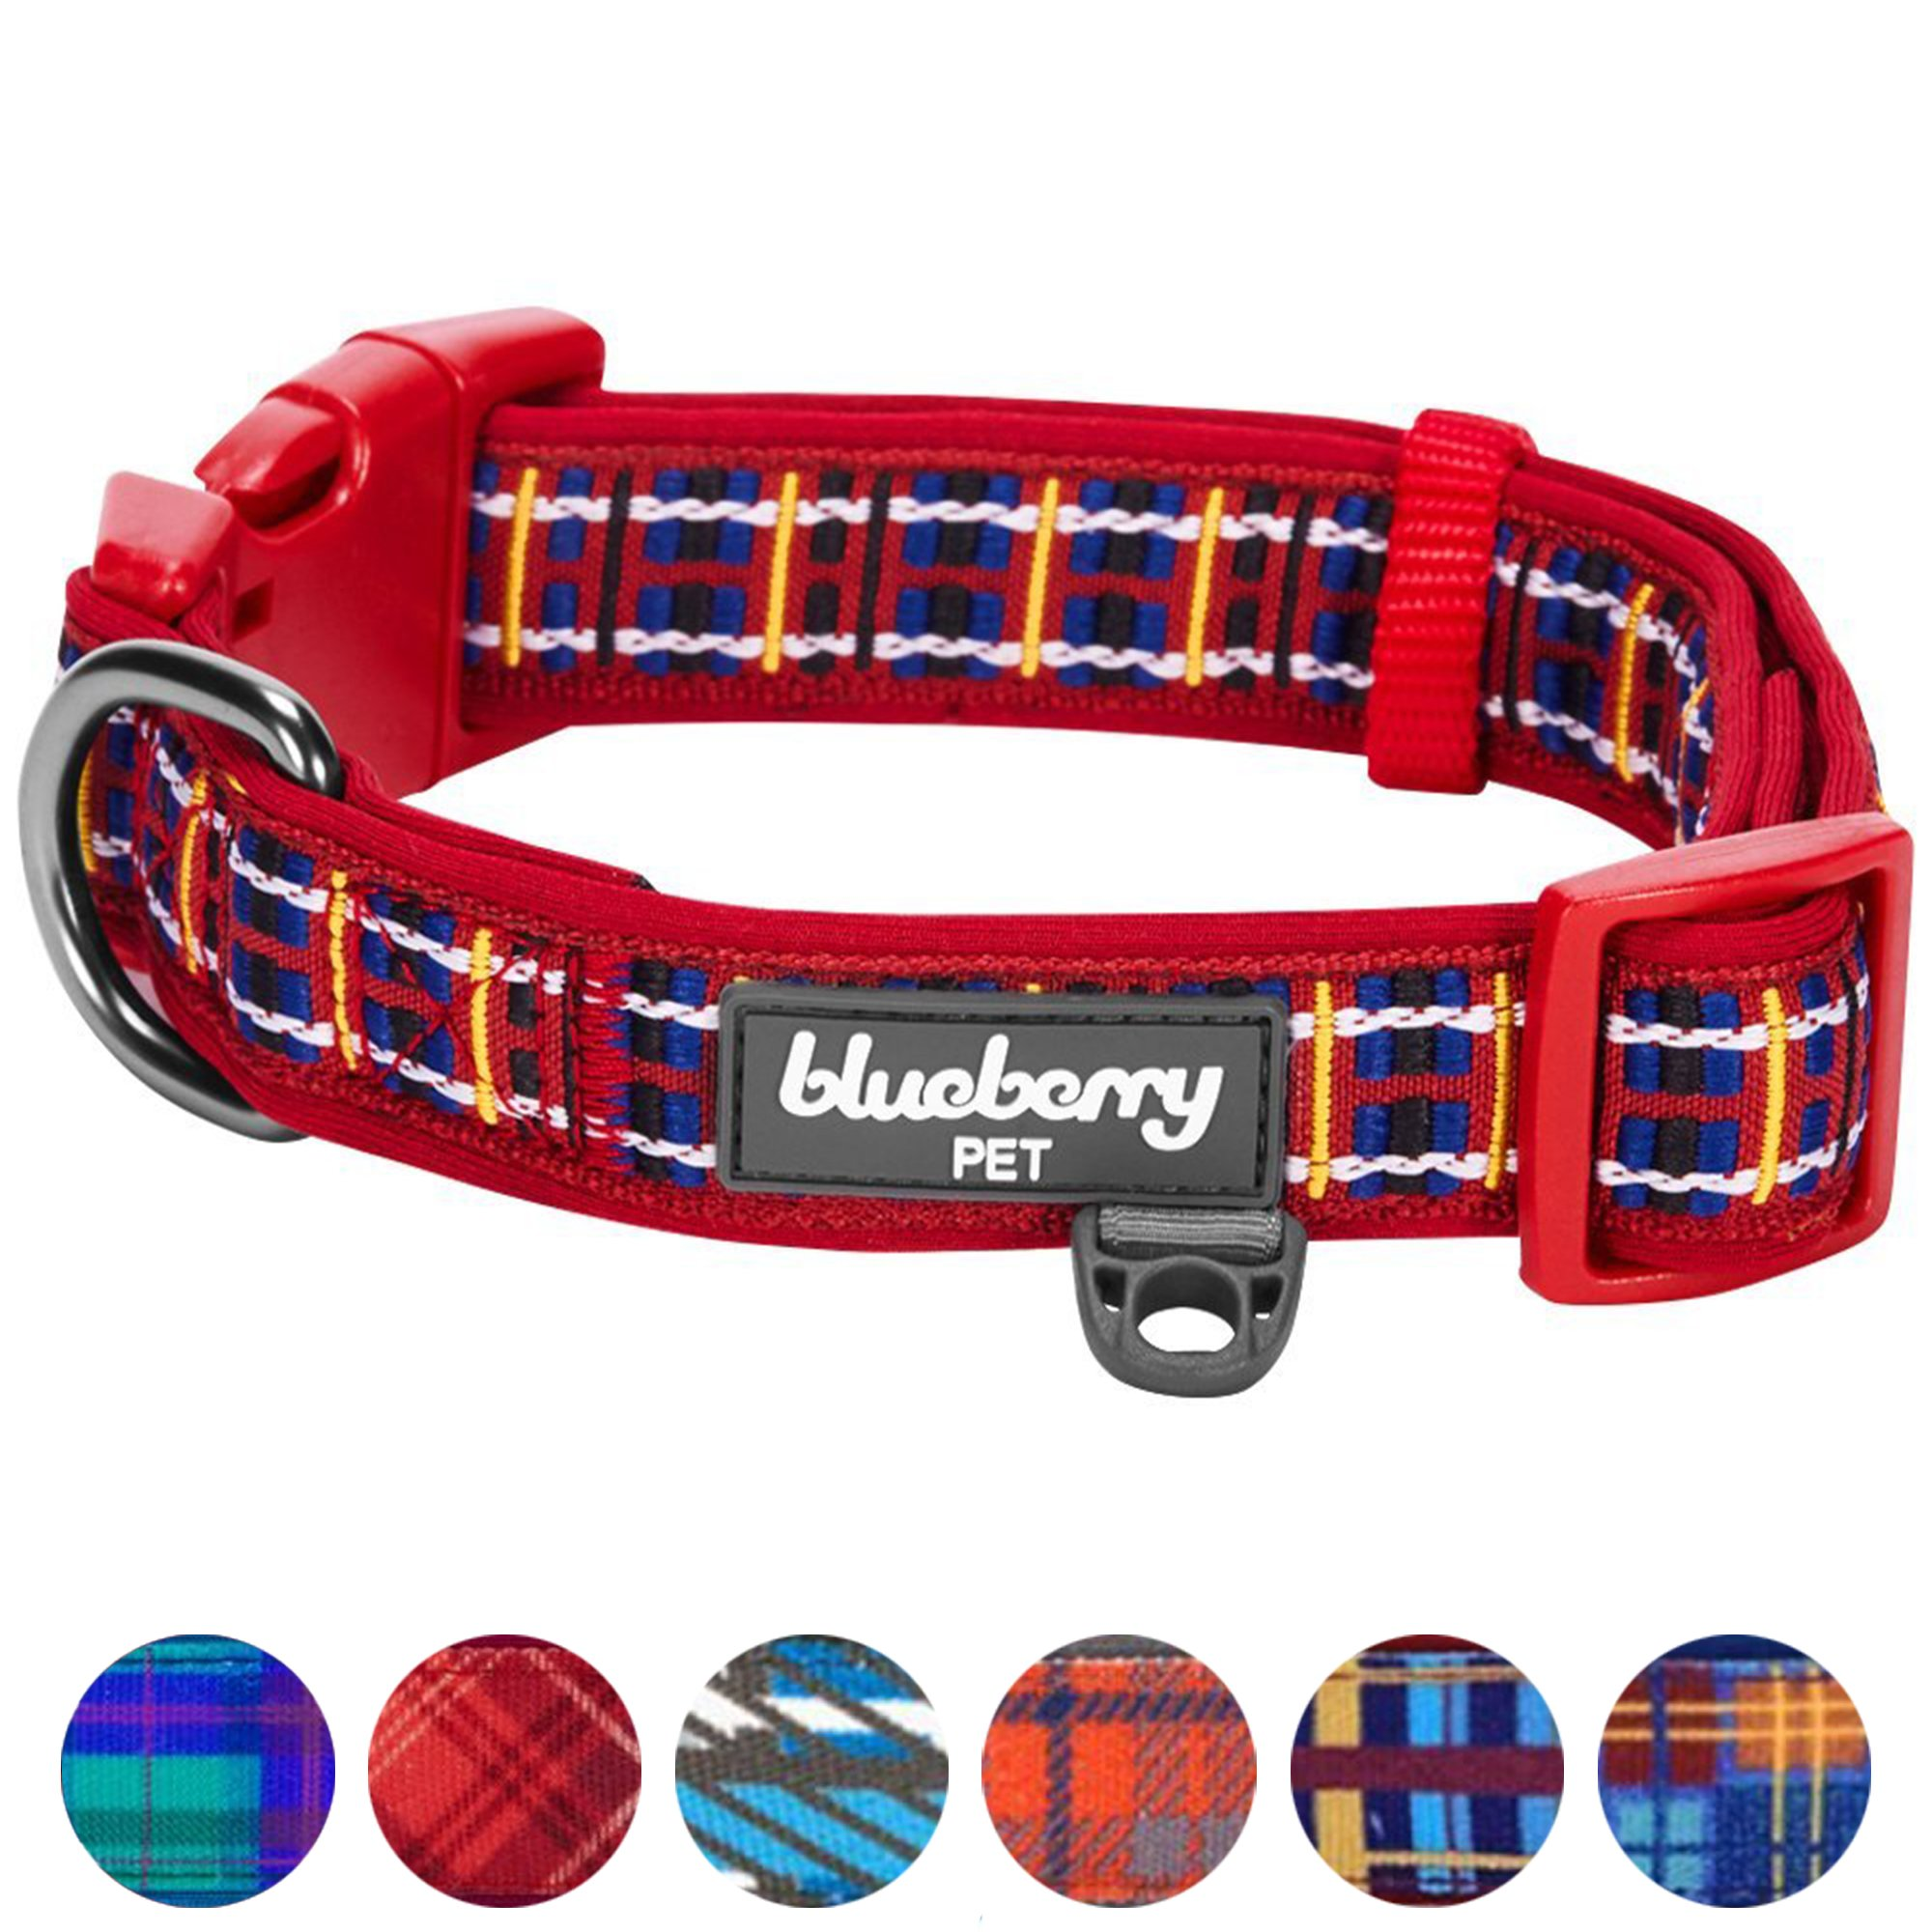 Blueberry Pet 7 Patterns Soft & Comfy Scottish Tartan Inspired Classic Plaid Check Pattern Padded Dog Collar, Medium, Neck 14.5''-20'', Adjustable Collars for Dogs